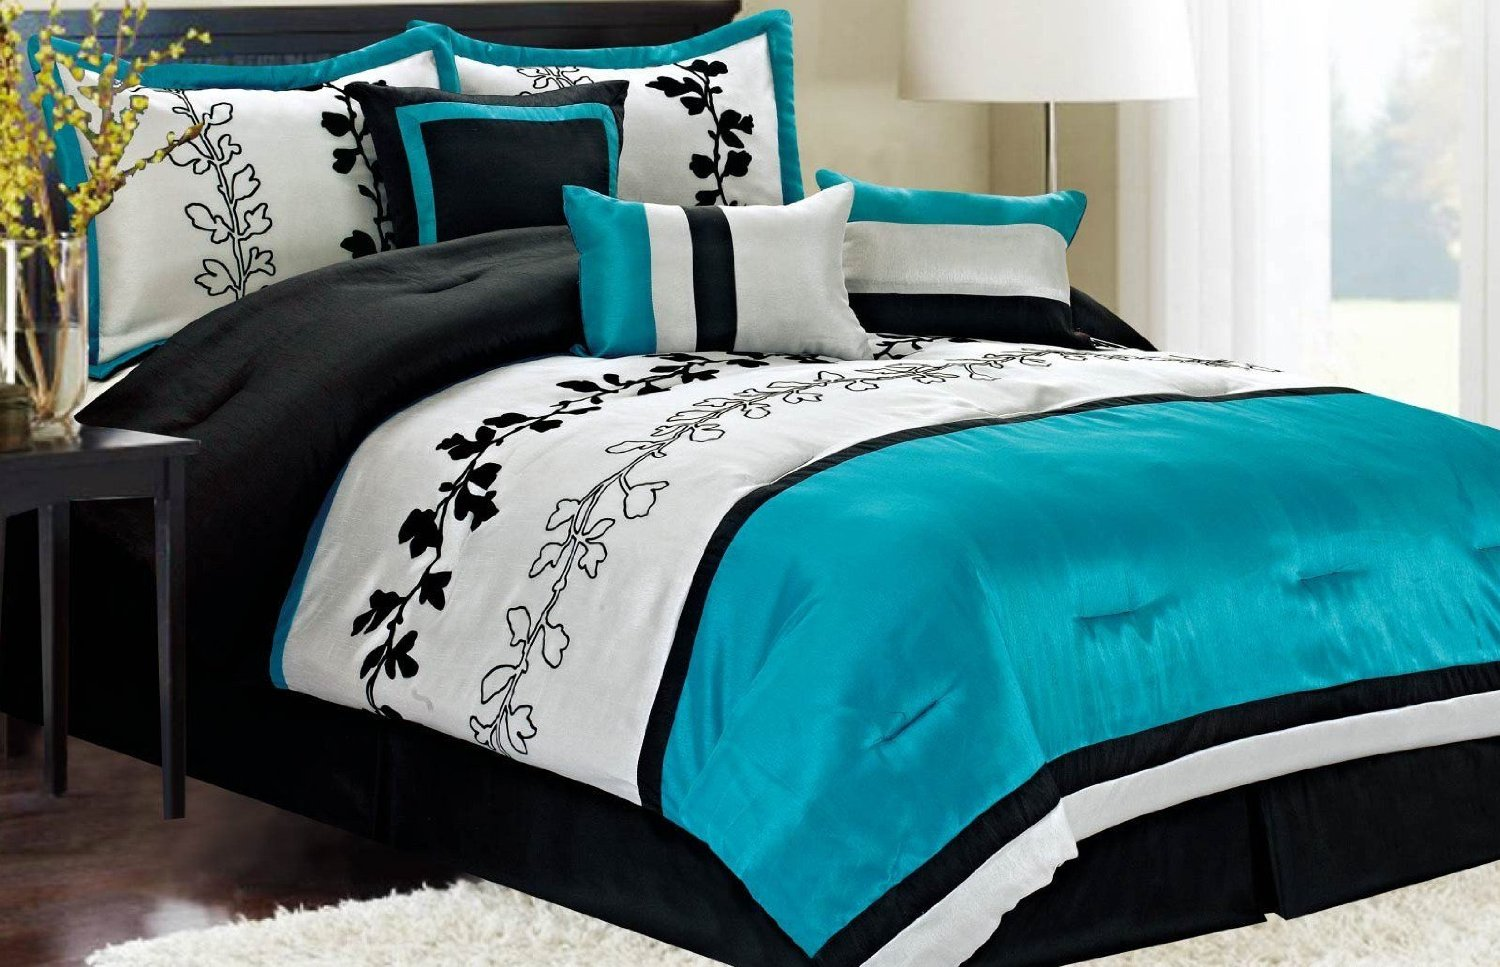 Best Quality Bed Sheet In Sri Lanka Creative Textile Mills